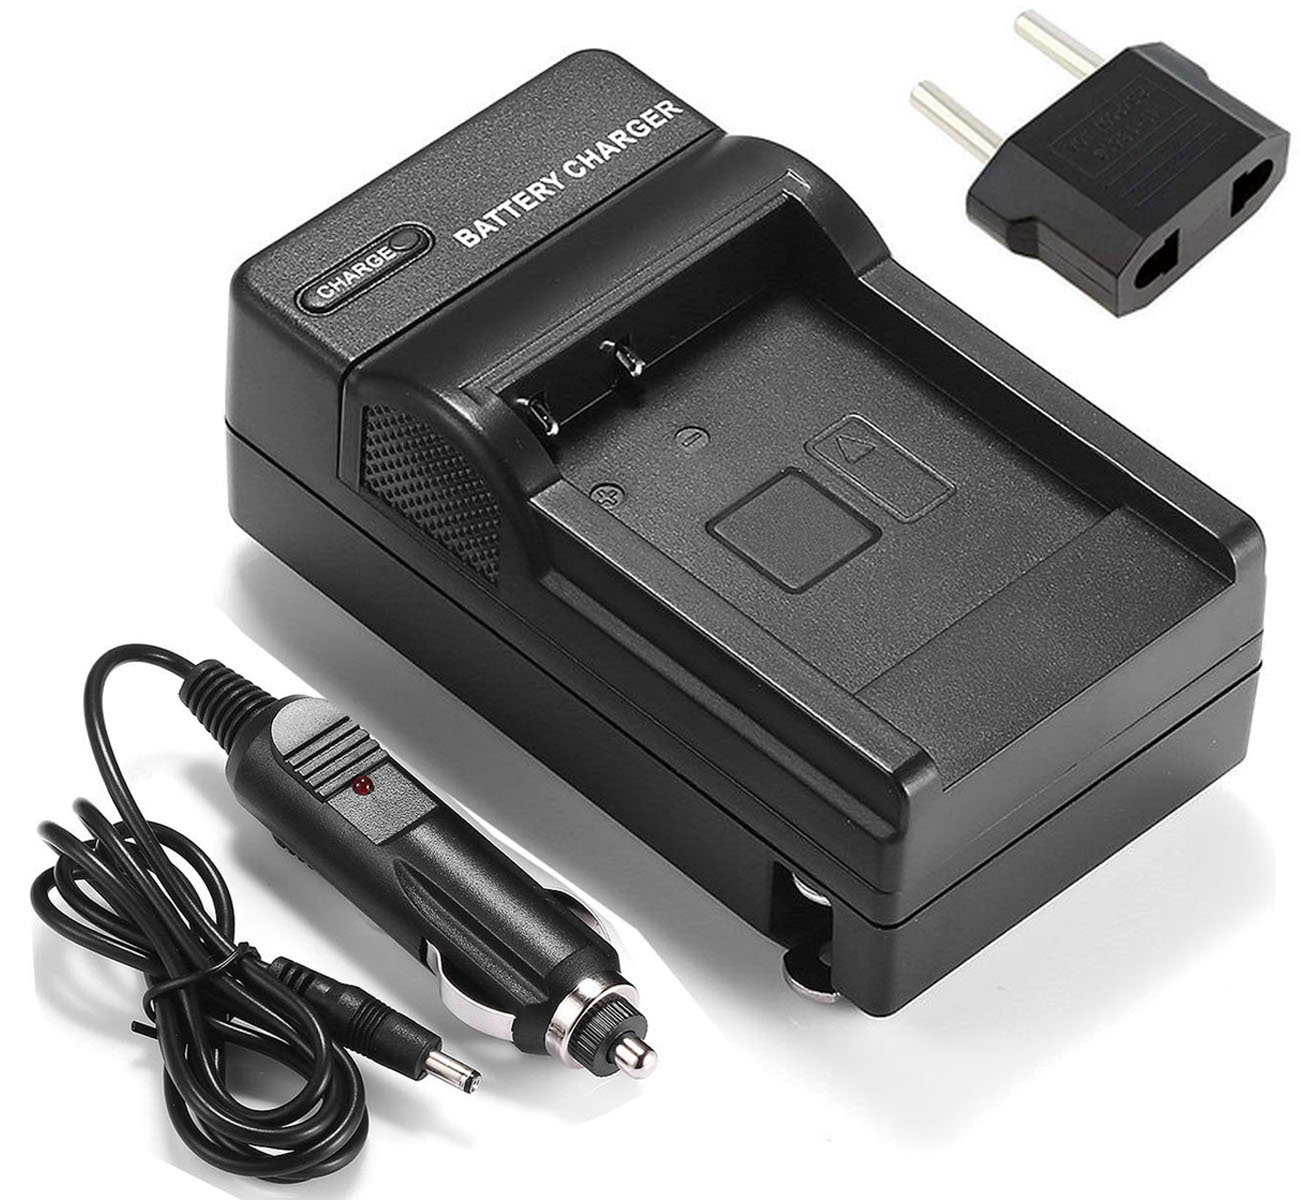 Battery Pack Charger for Samsung VP-DC563 VP-DC575Wi Digital Camcorder VP-DC575WB VP-DC563i